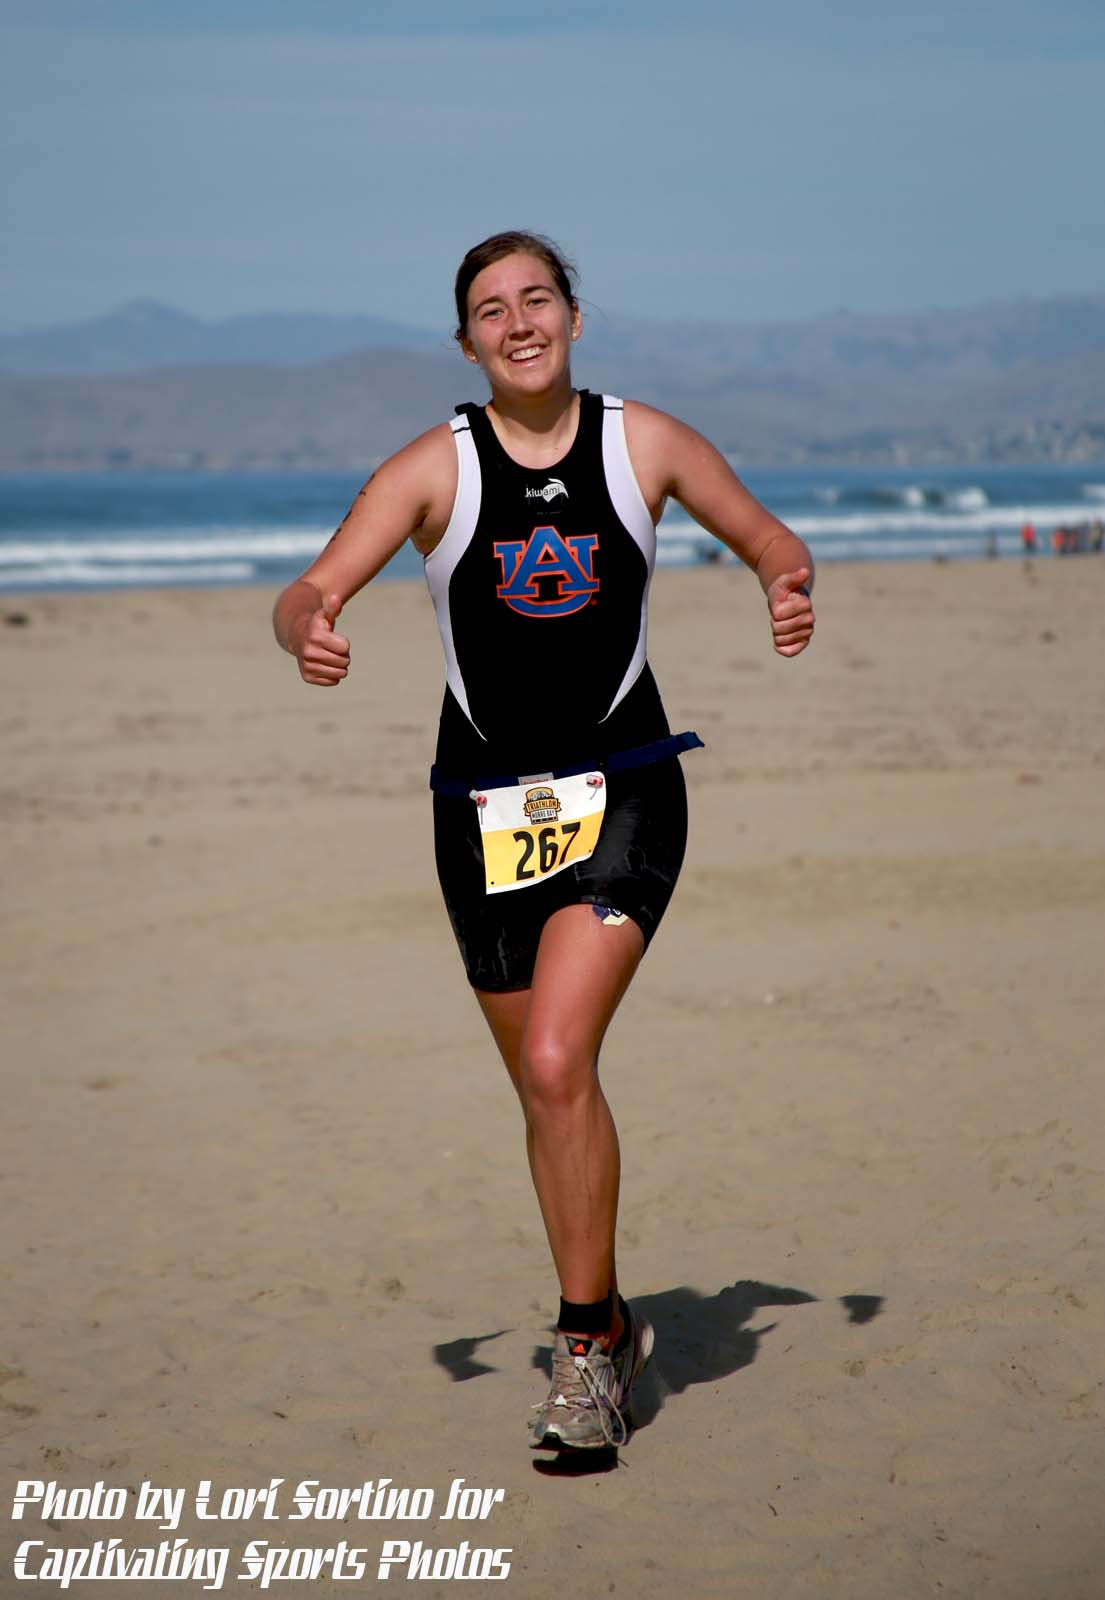 female triathlete running on beach thumbs up smiling Morro Bay Tri